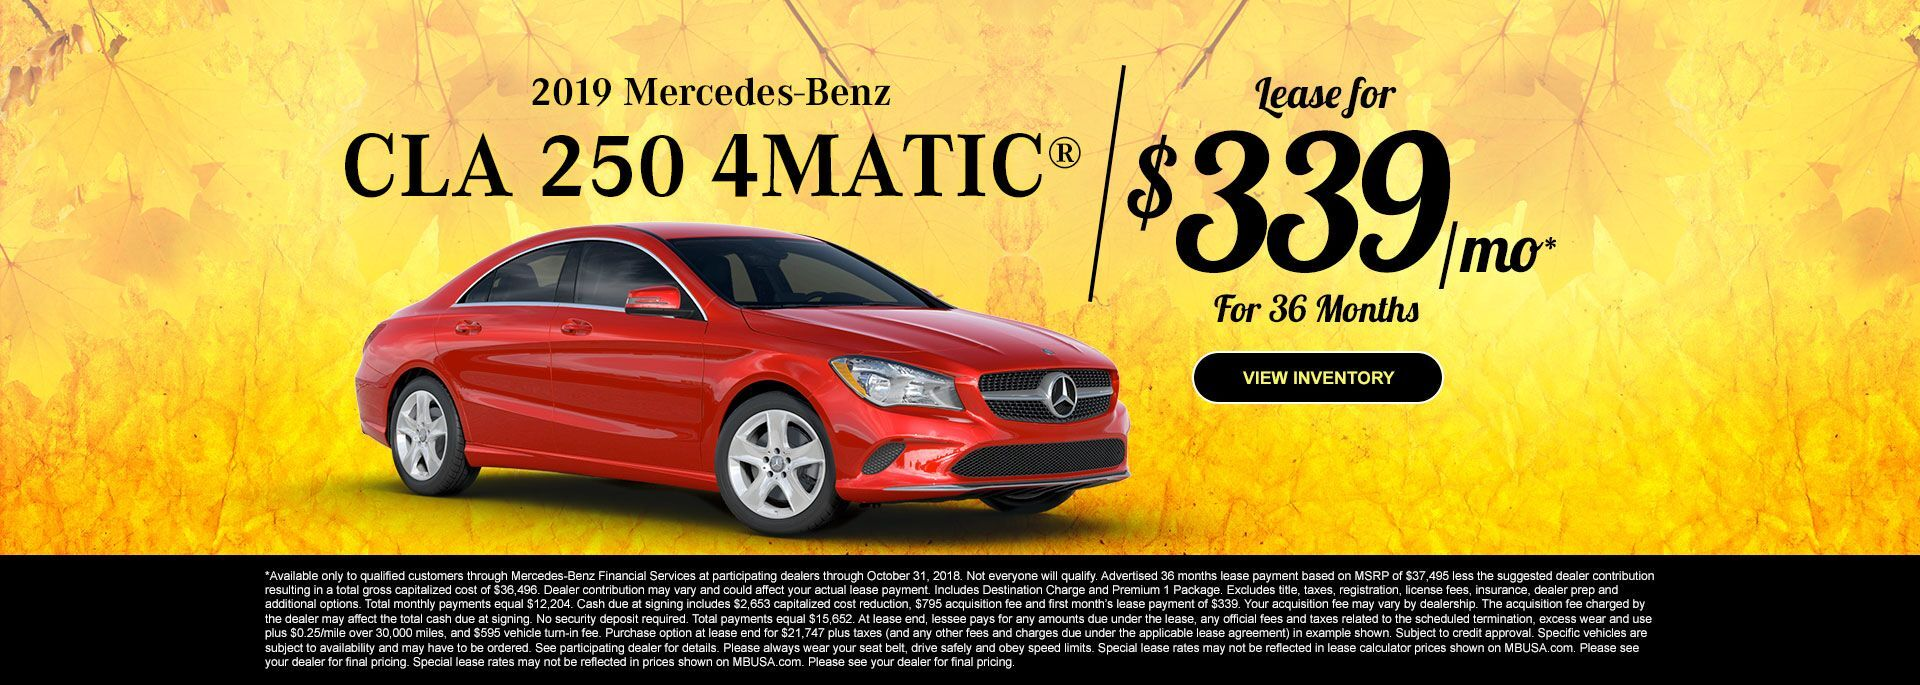 Mercedes Benz Dealership Indianapolis IN | Used Cars Mercedes Benz ...